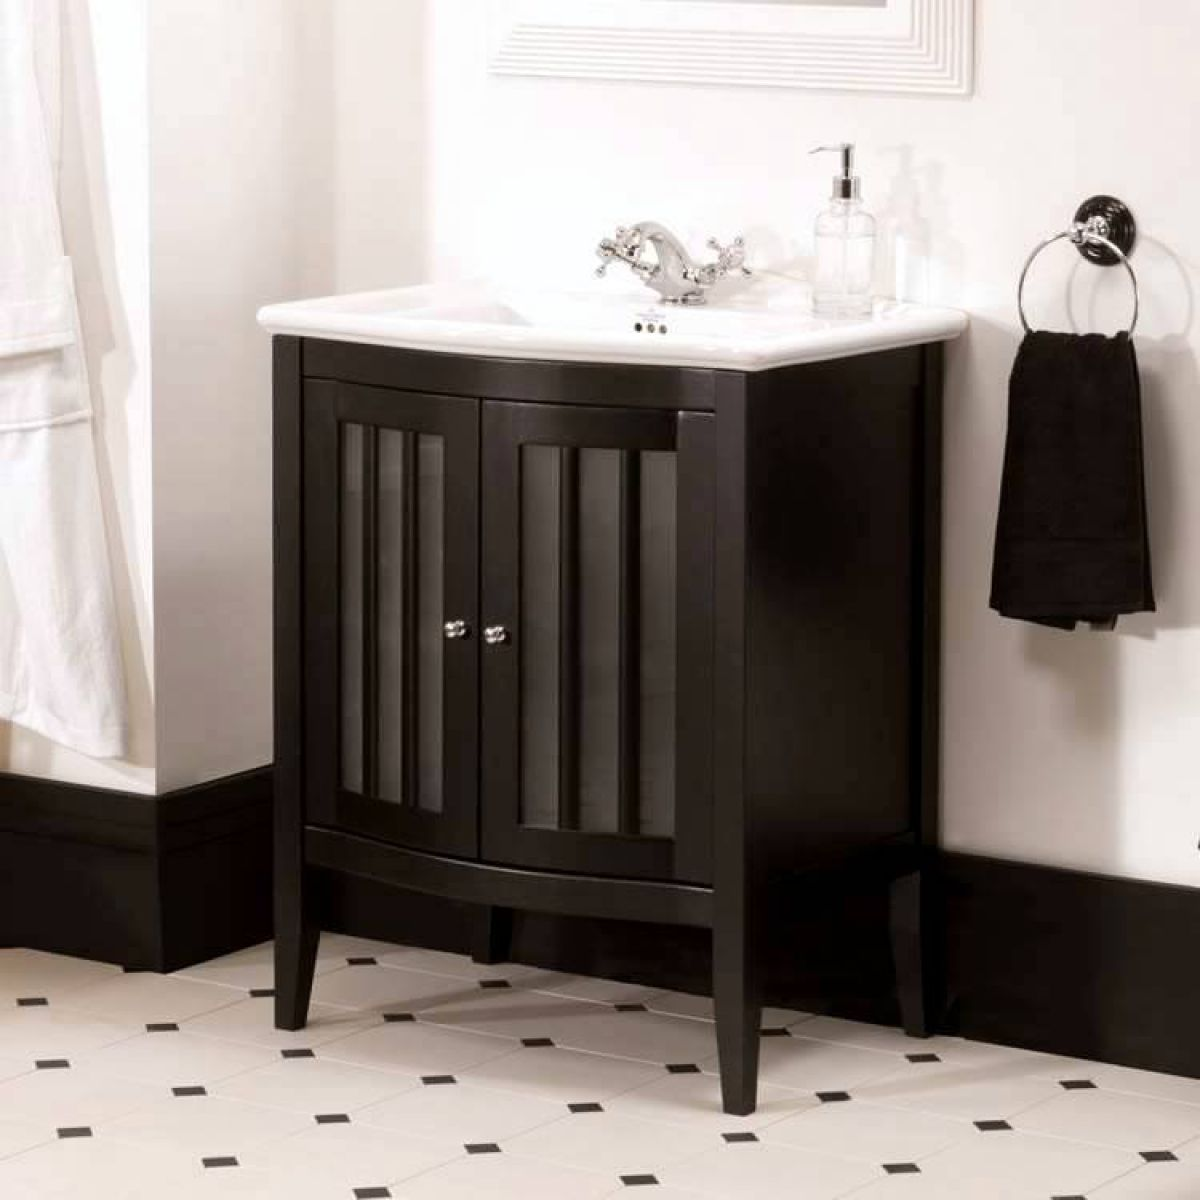 Imperial Westminster Linea Vanity Unit & Basin